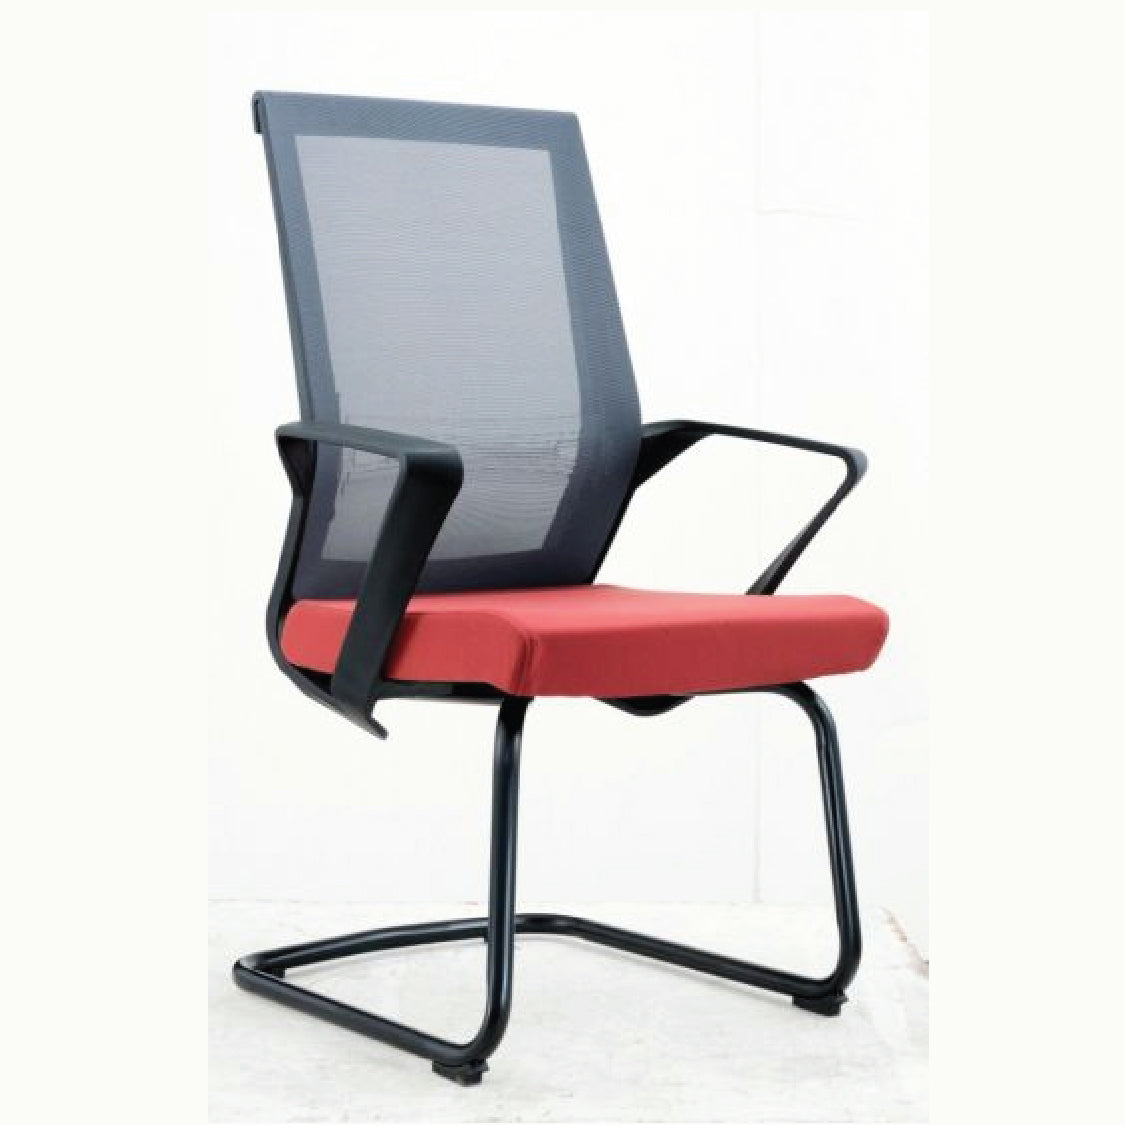 Korean Visitor Chair - Red Black